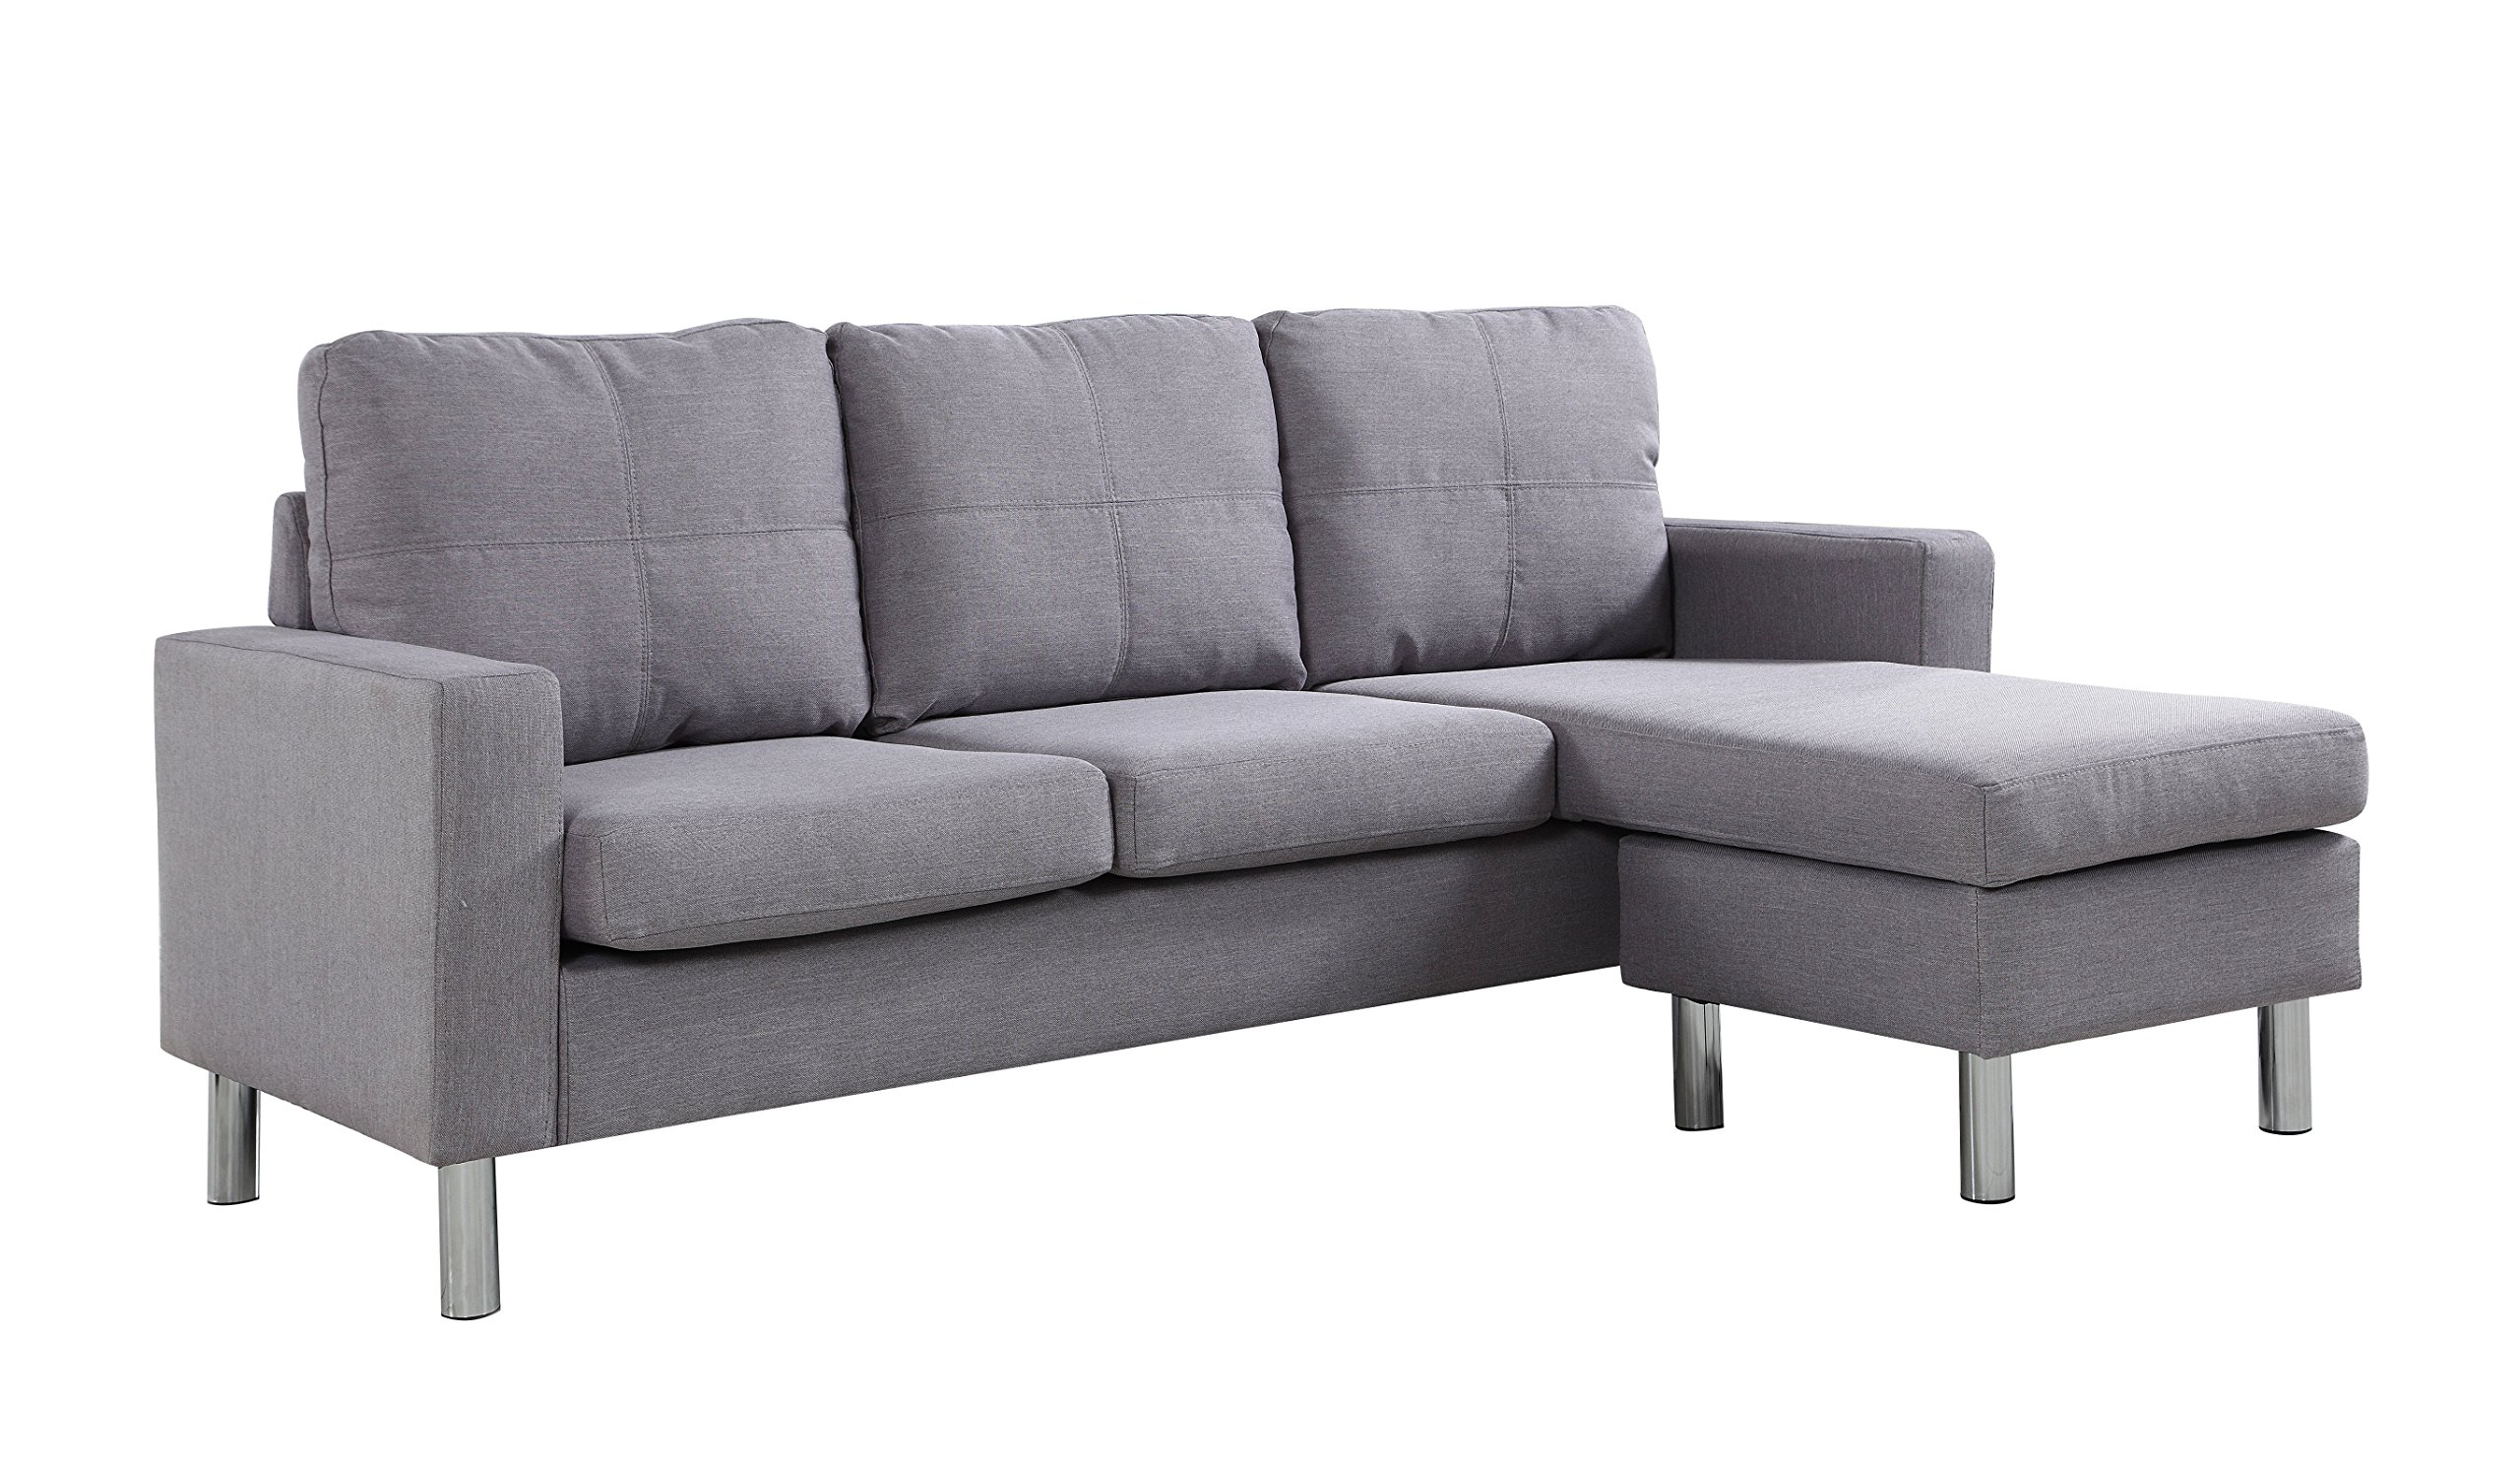 Moderne Livinf EXP16-LGR Modern Living Reversible Linen Fabric Sectional Sofa, Light Grey -  - sofas-couches, living-room-furniture, living-room - 81FuOnCrNxL -